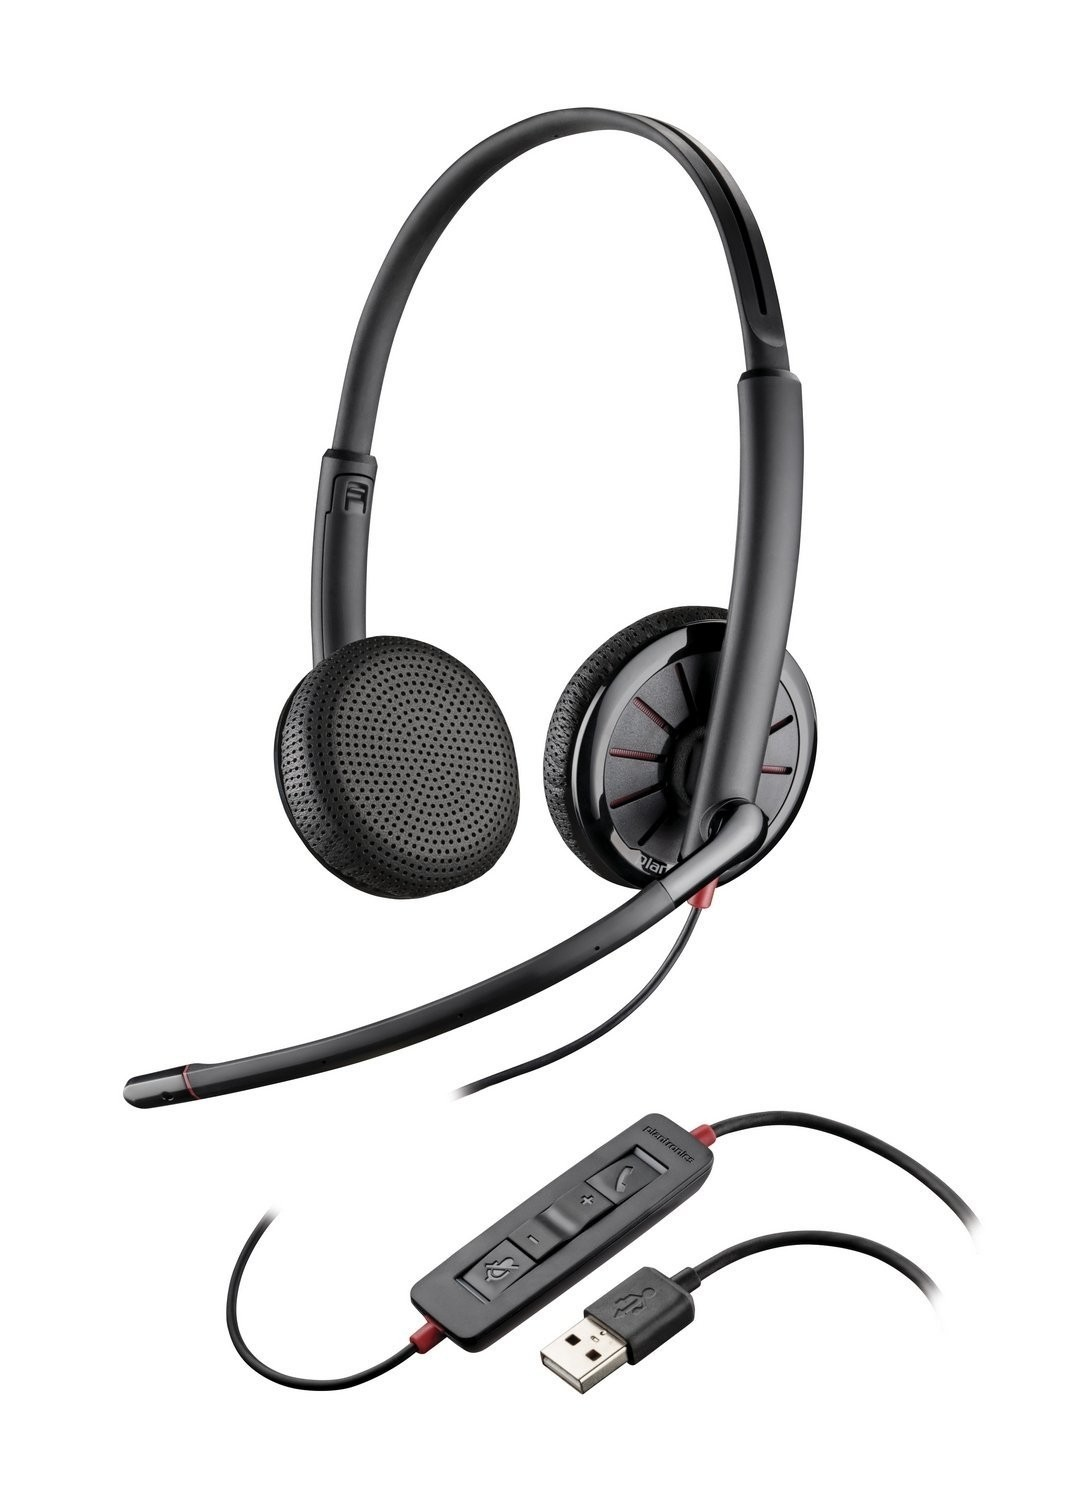 hight resolution of  plantronics blackwire binaural headset with 3 5mm usb c325 1 or c325 1 m